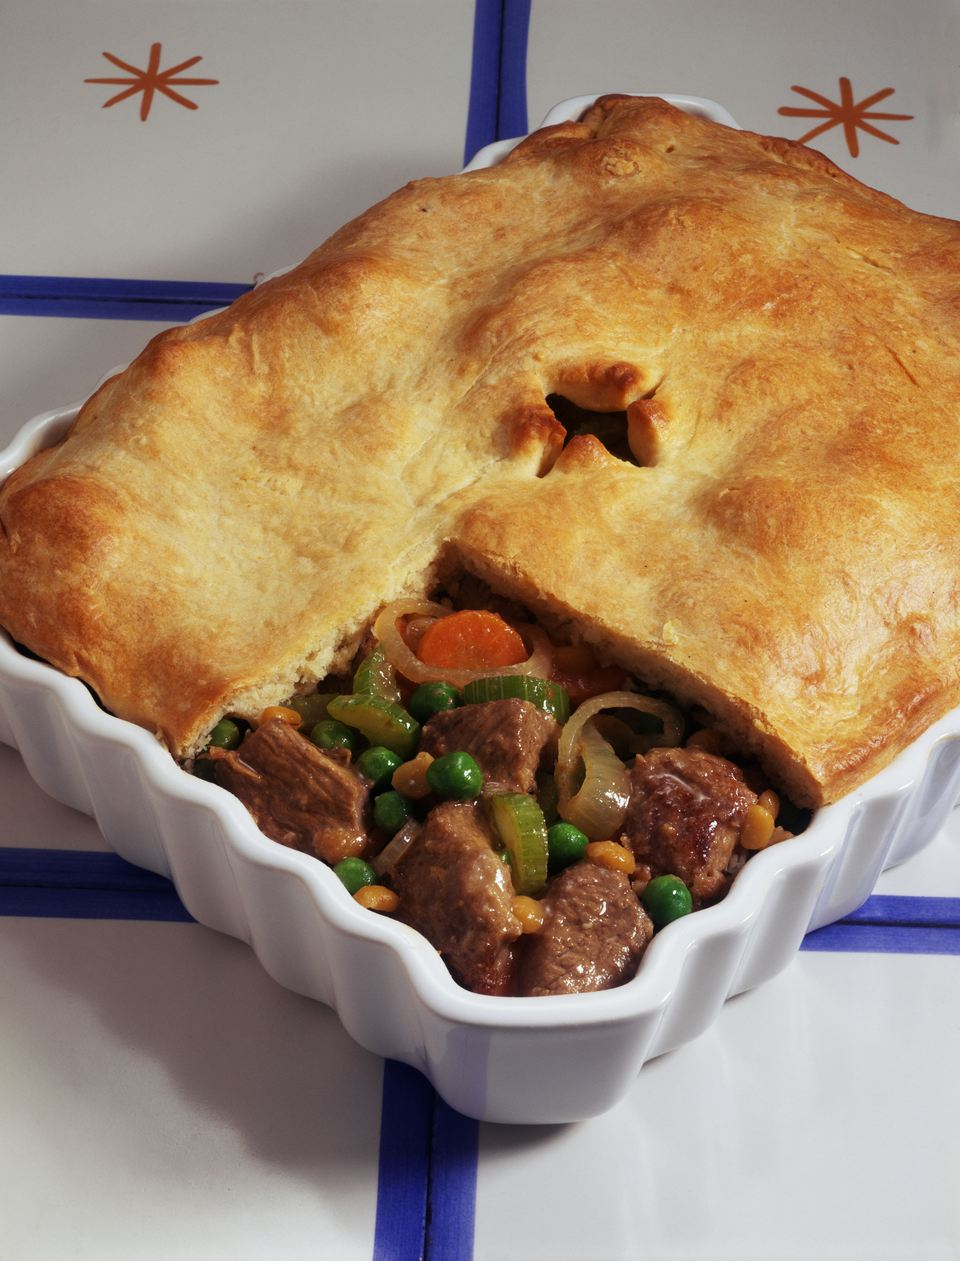 Meat pot pie in a casserole dish on a tile counter